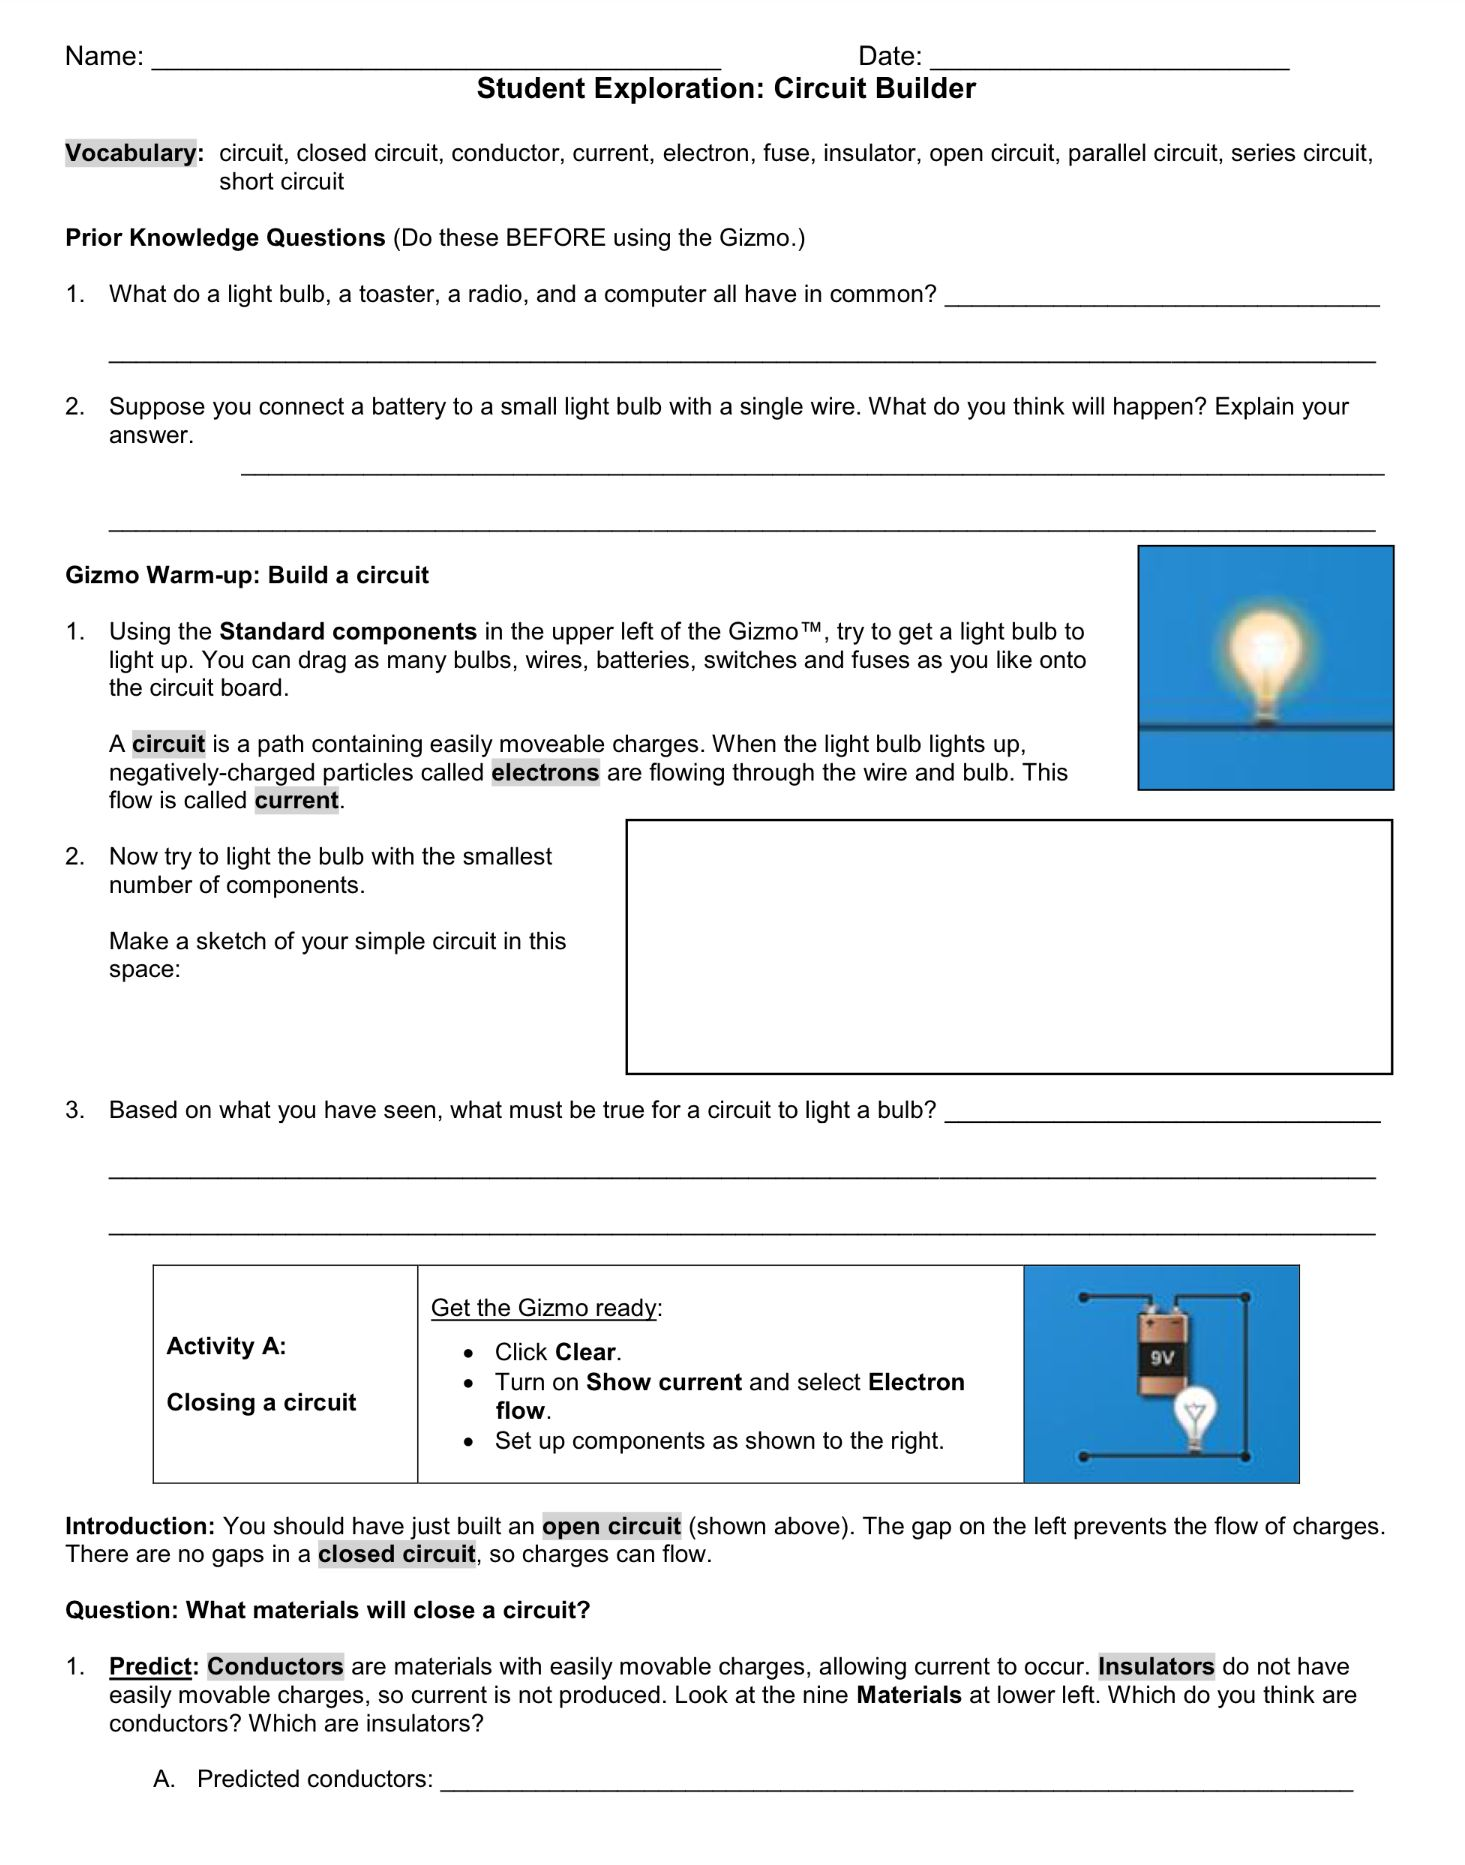 Circuit Builder - Student Exploration Worksheet - Wednesday ...